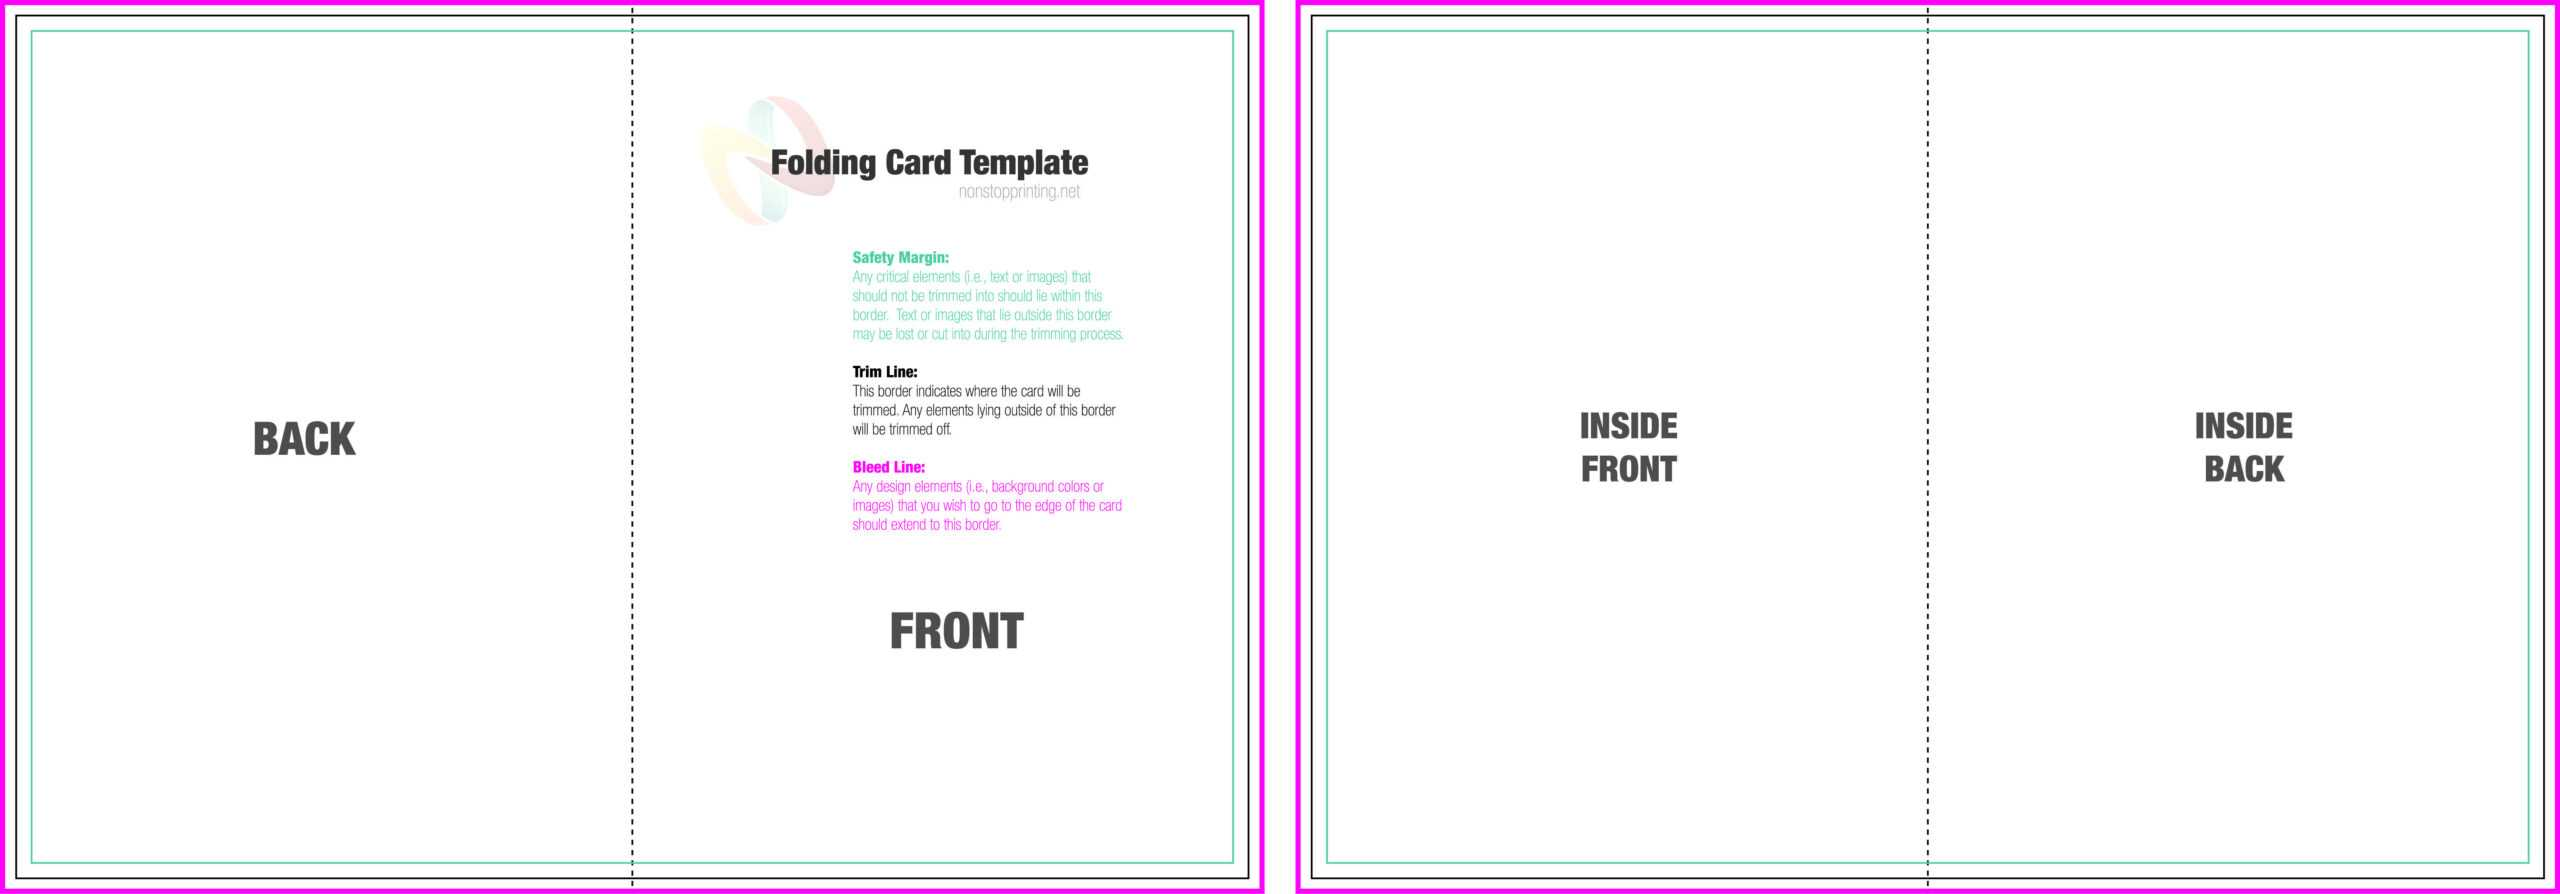 39 Online Folding Card Template For Word Now With Folding Throughout Foldable Card Template Word